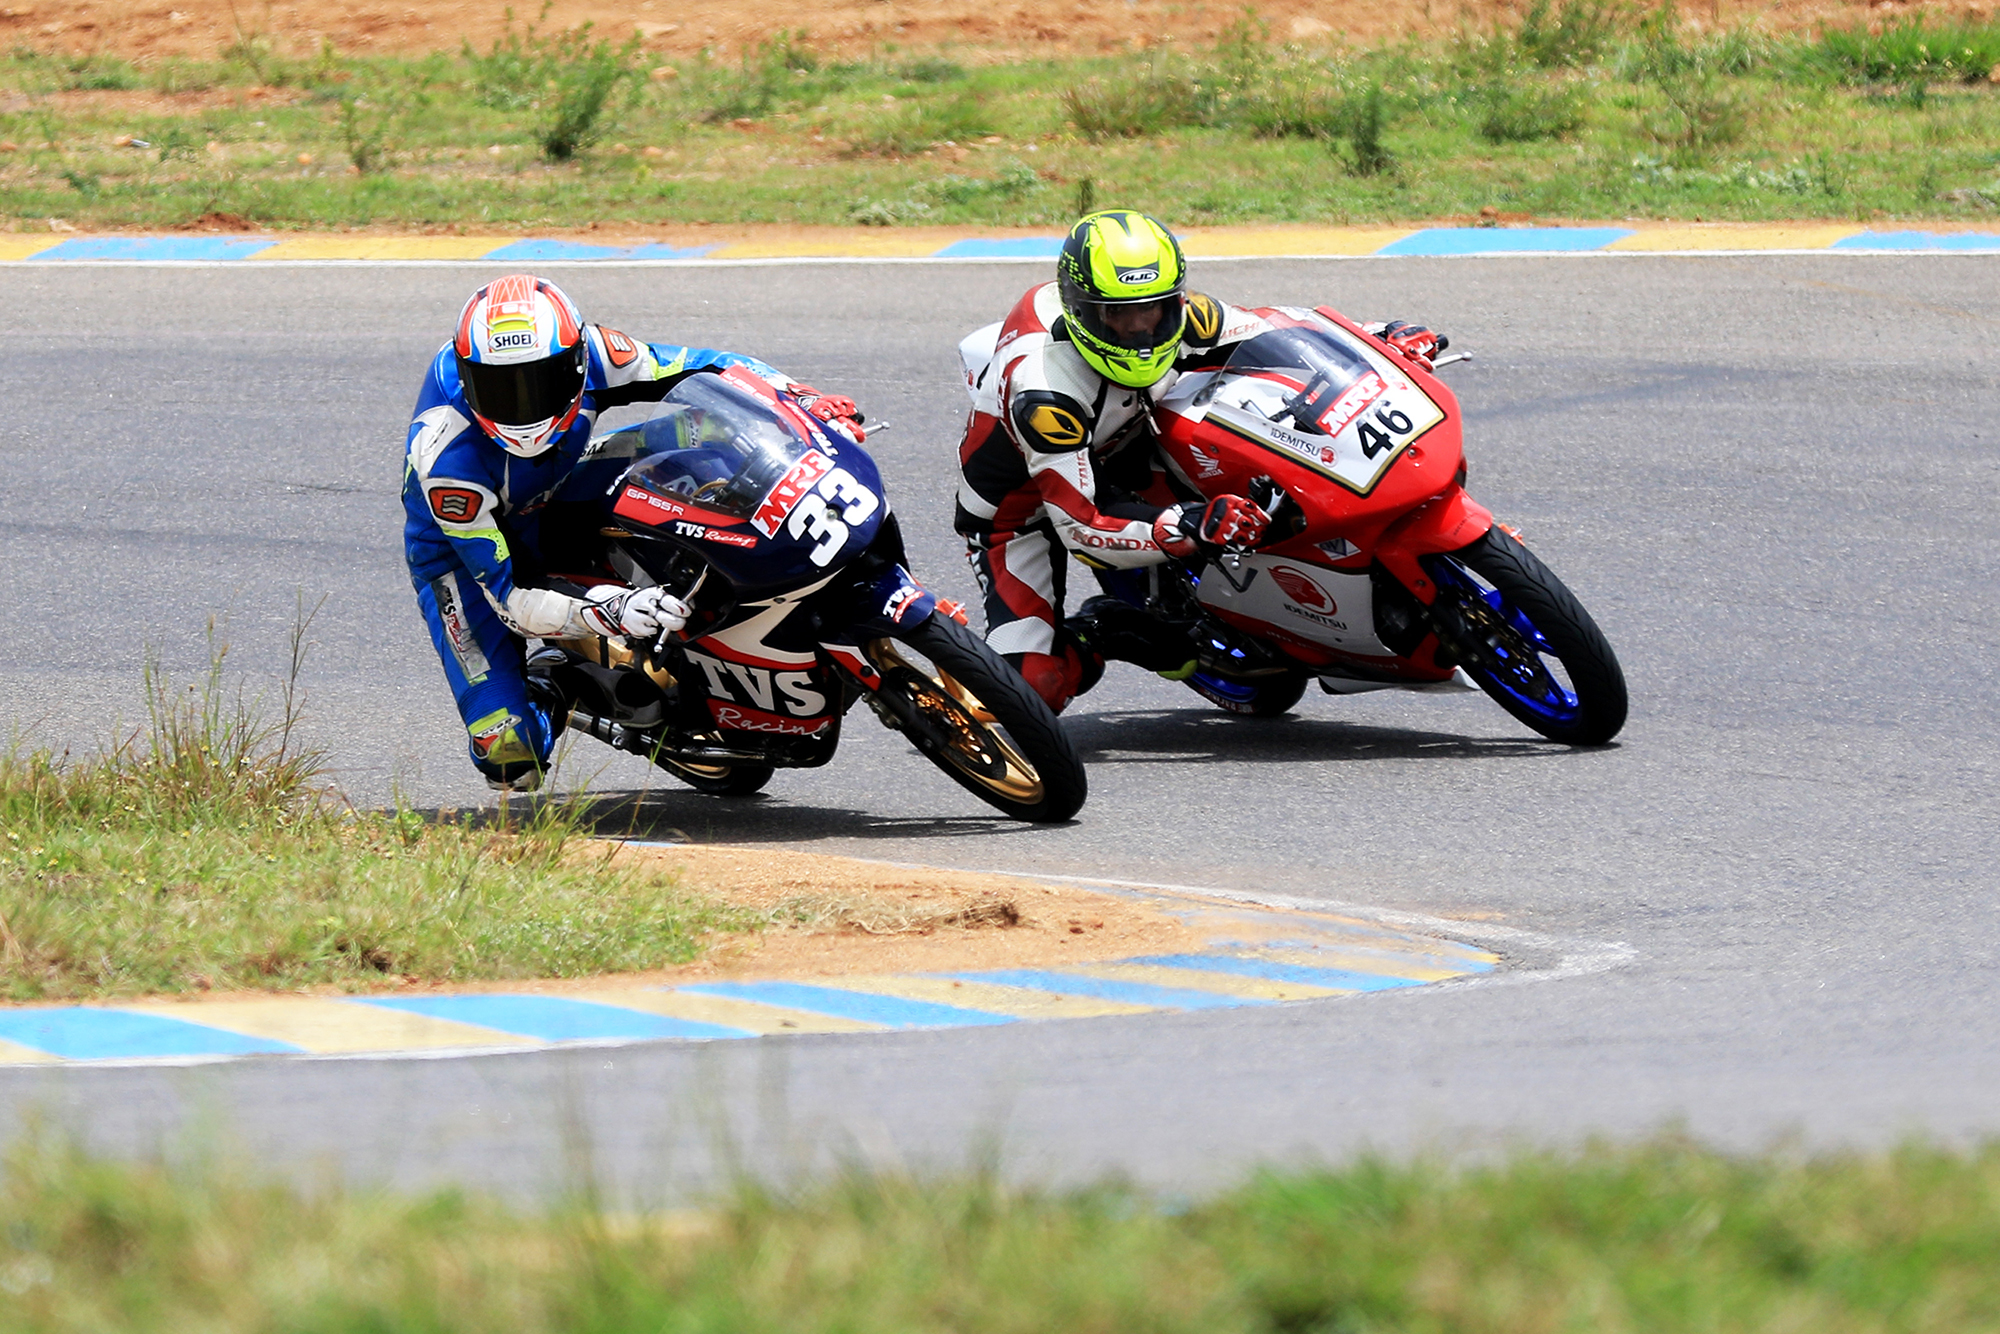 KY Ahamed (No,.33) easing past Mathana Kumar (46) en route to winning the Super Sport Indian (165cc) race (June 10).jpg